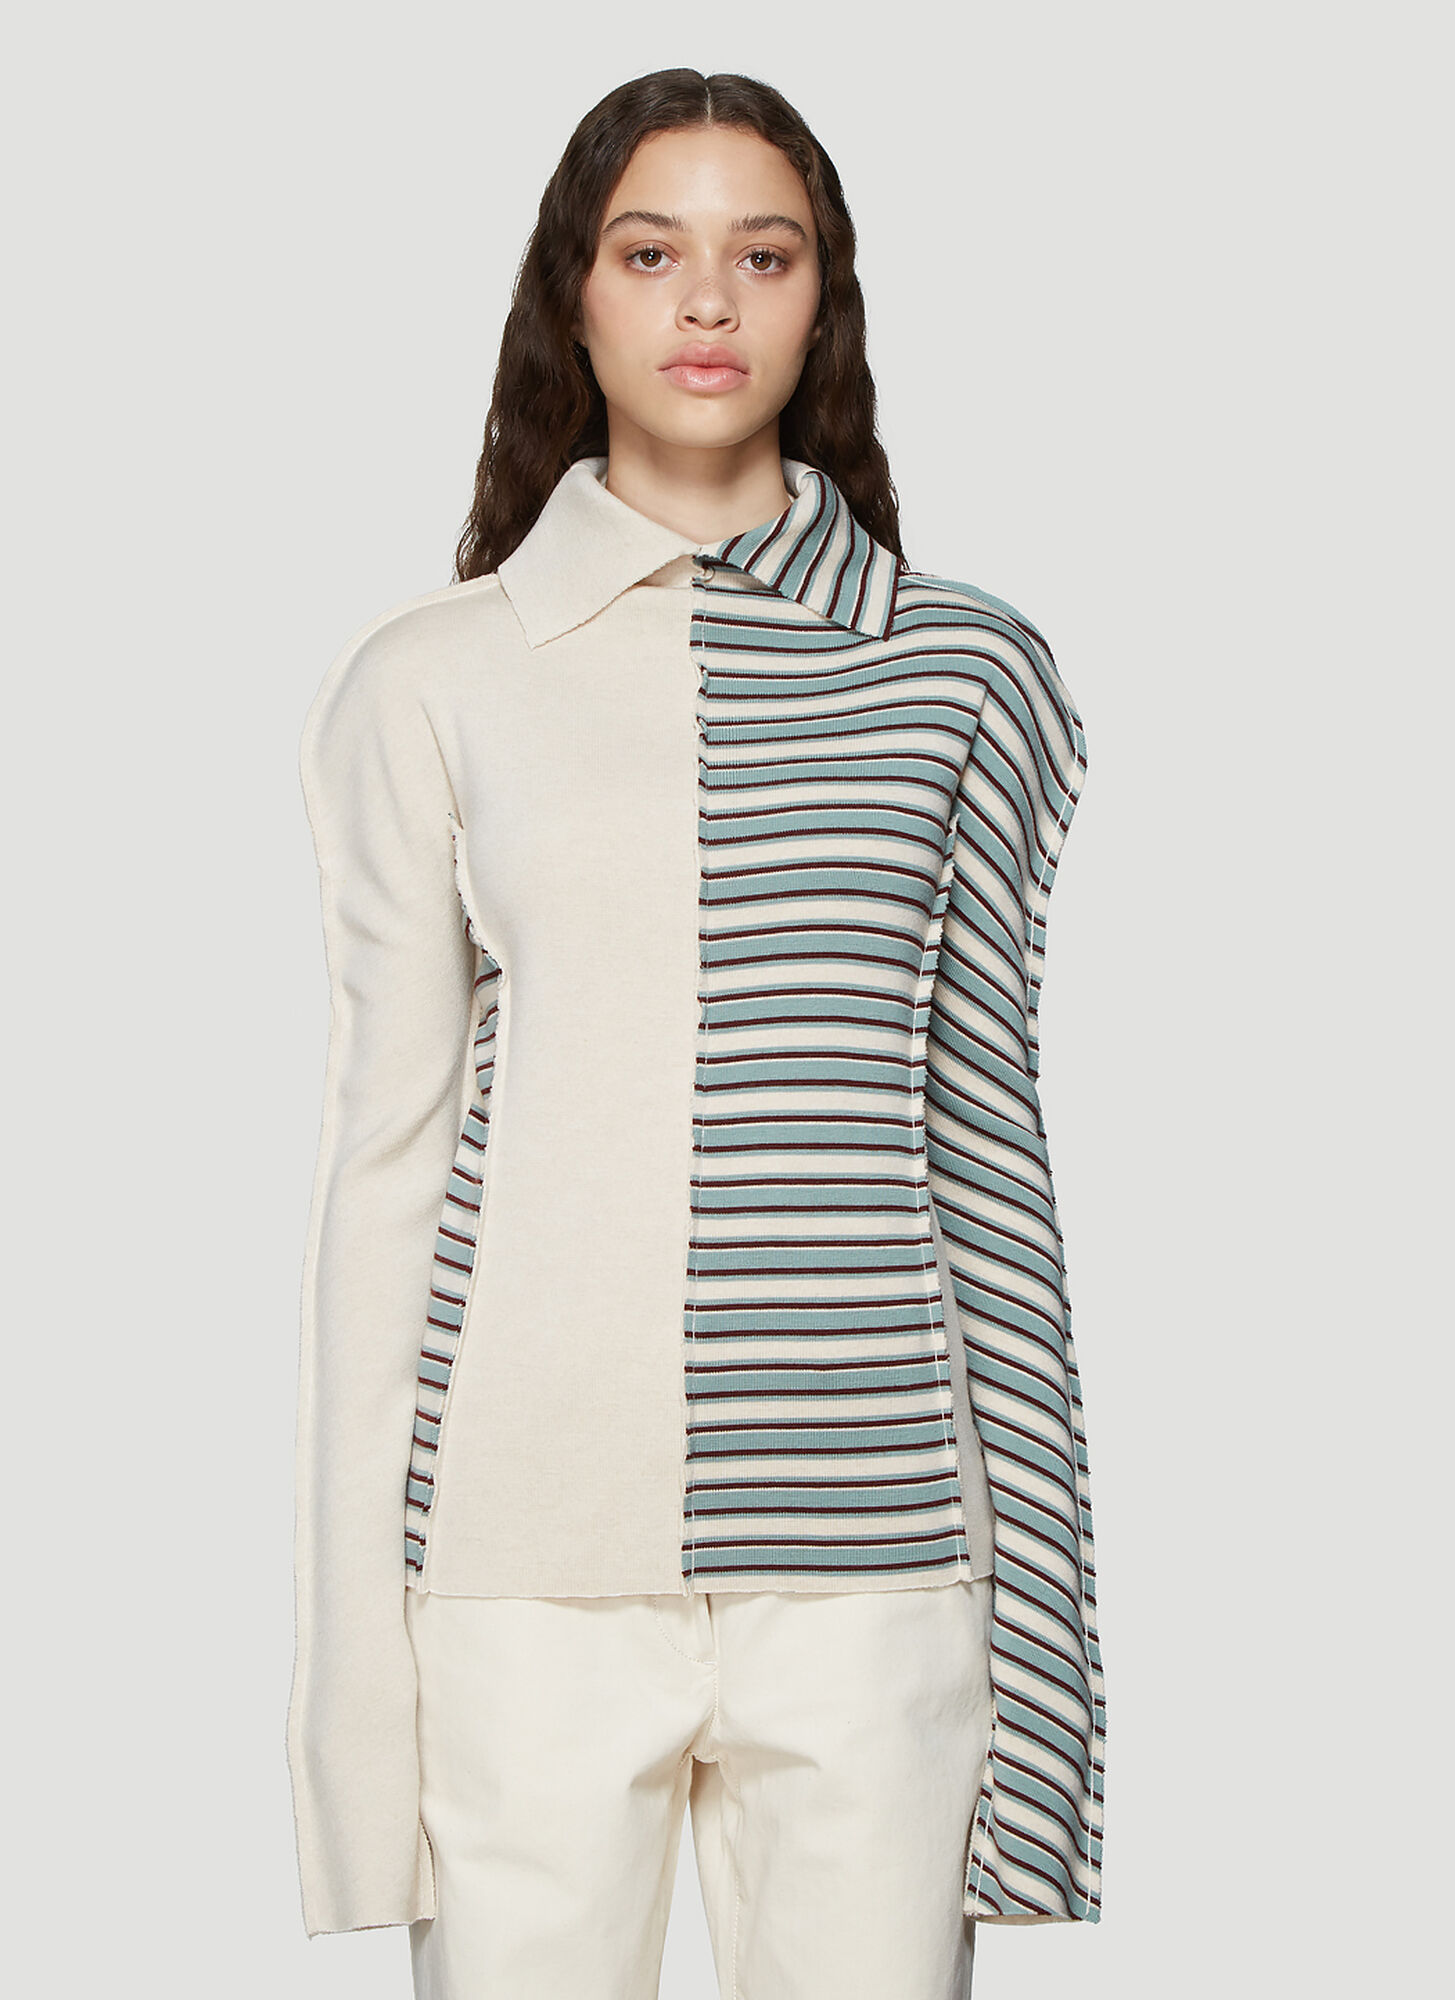 Jil Sander Stripe Knit Sweater in Sand and Blue